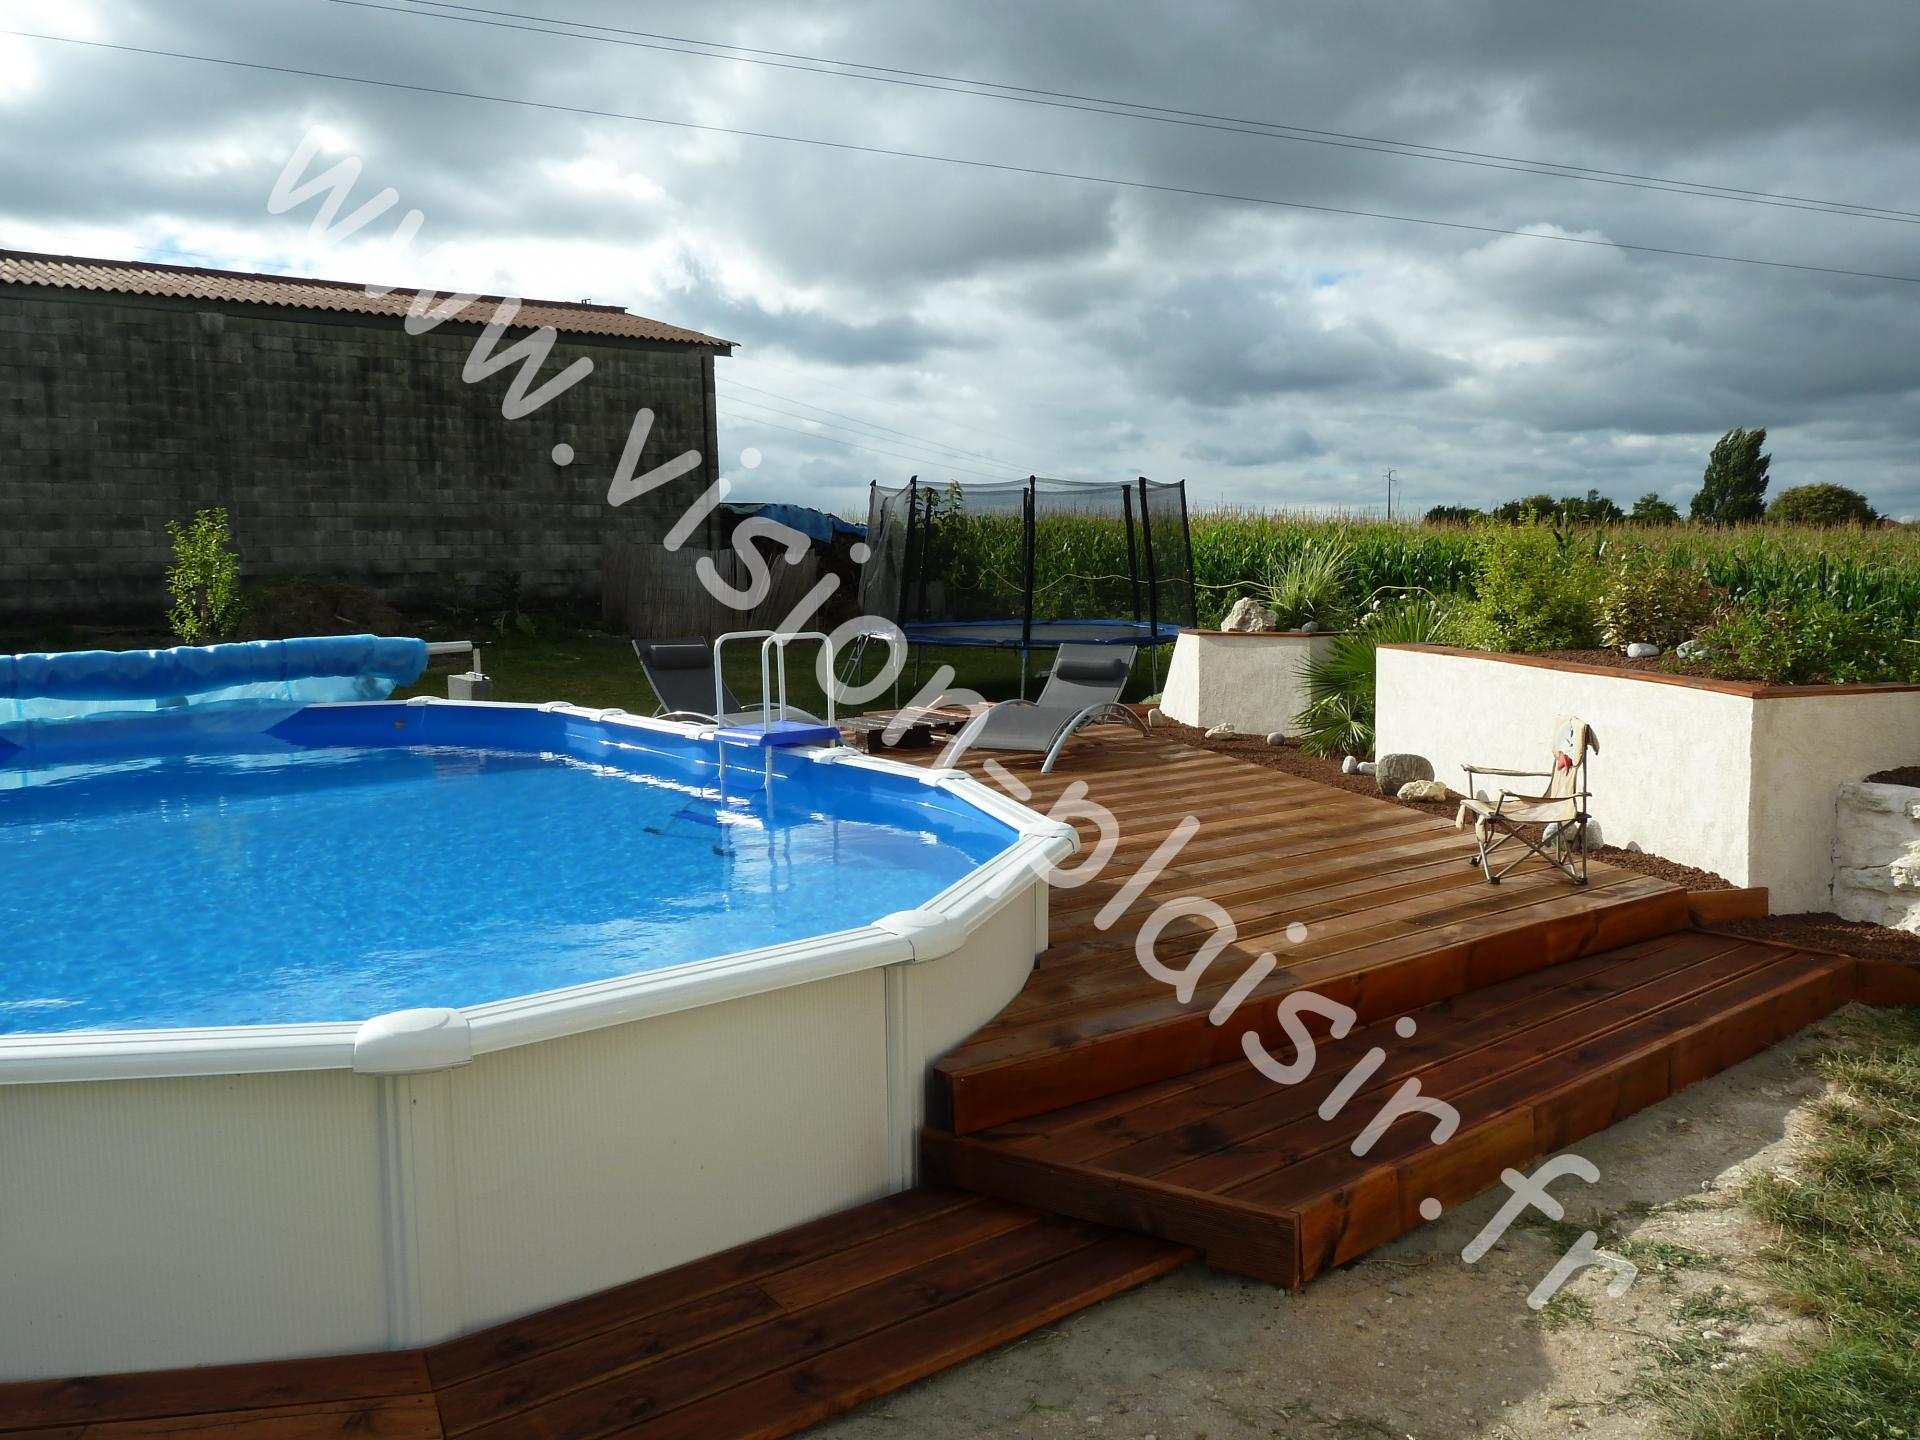 Blog de vision plaisir piscine hors sol semi enterr e for Piscine bois semi enterree